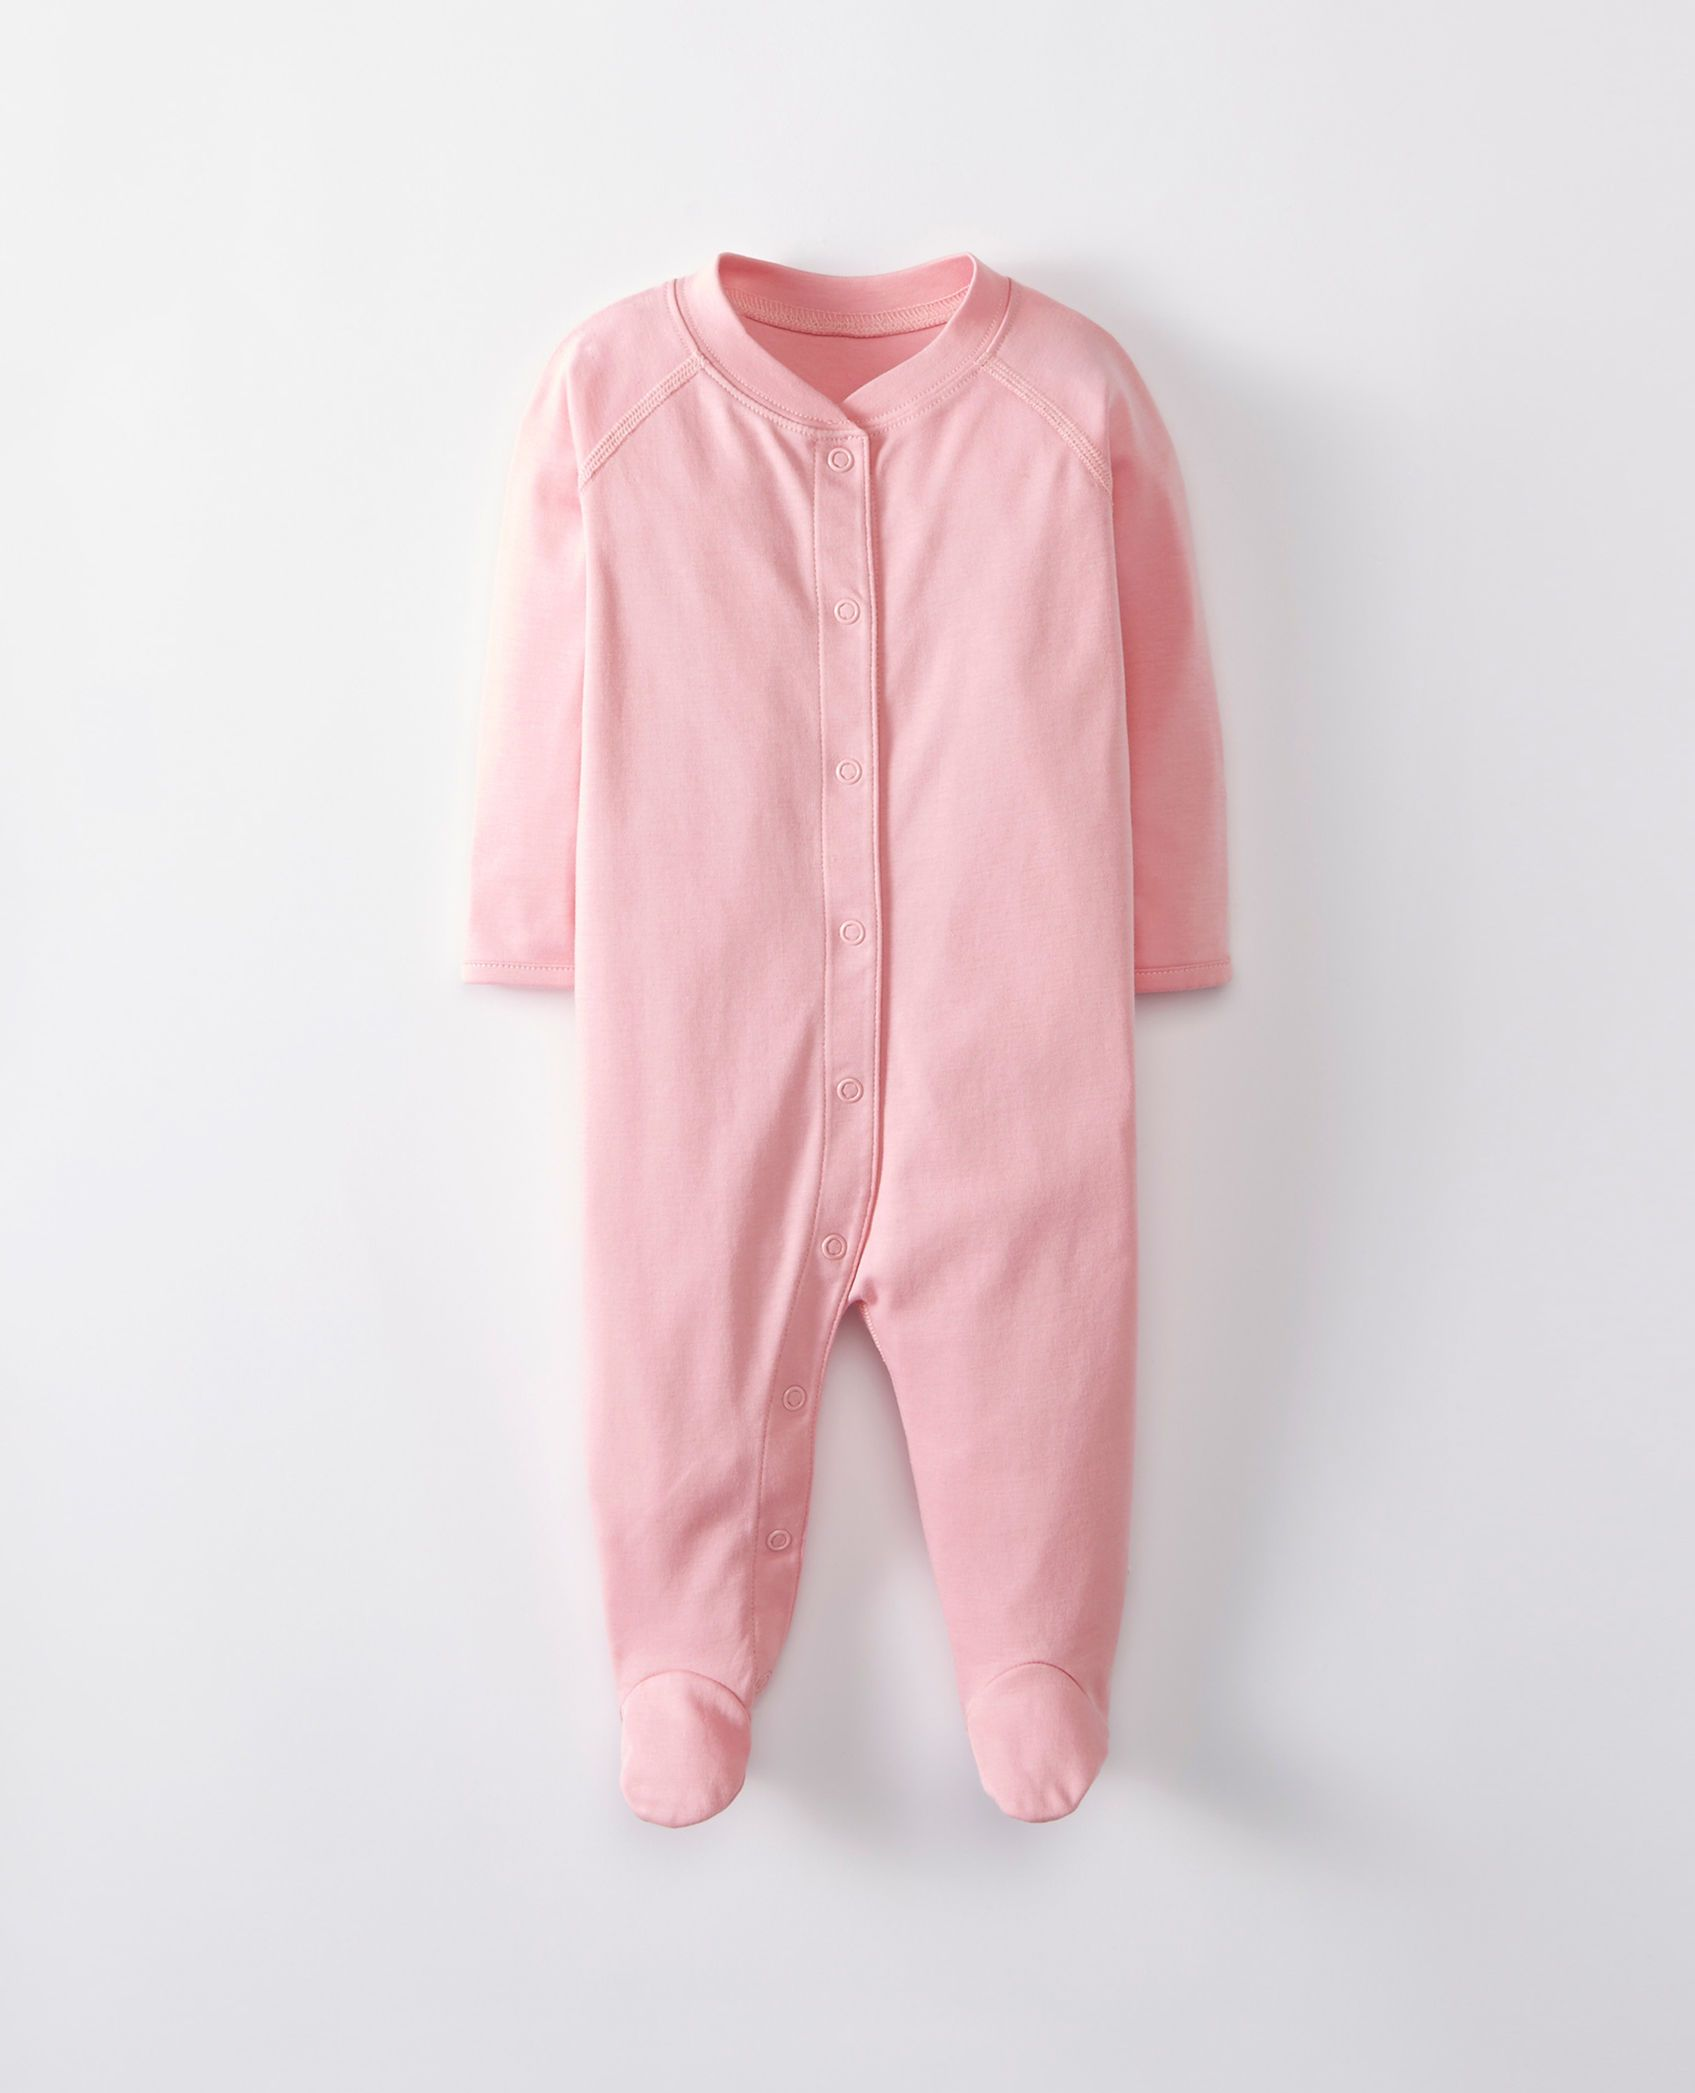 0d8dd4ed1d55 Little Sleepers With Feet In Organic Pima Cotton in Lilla Rosa ...